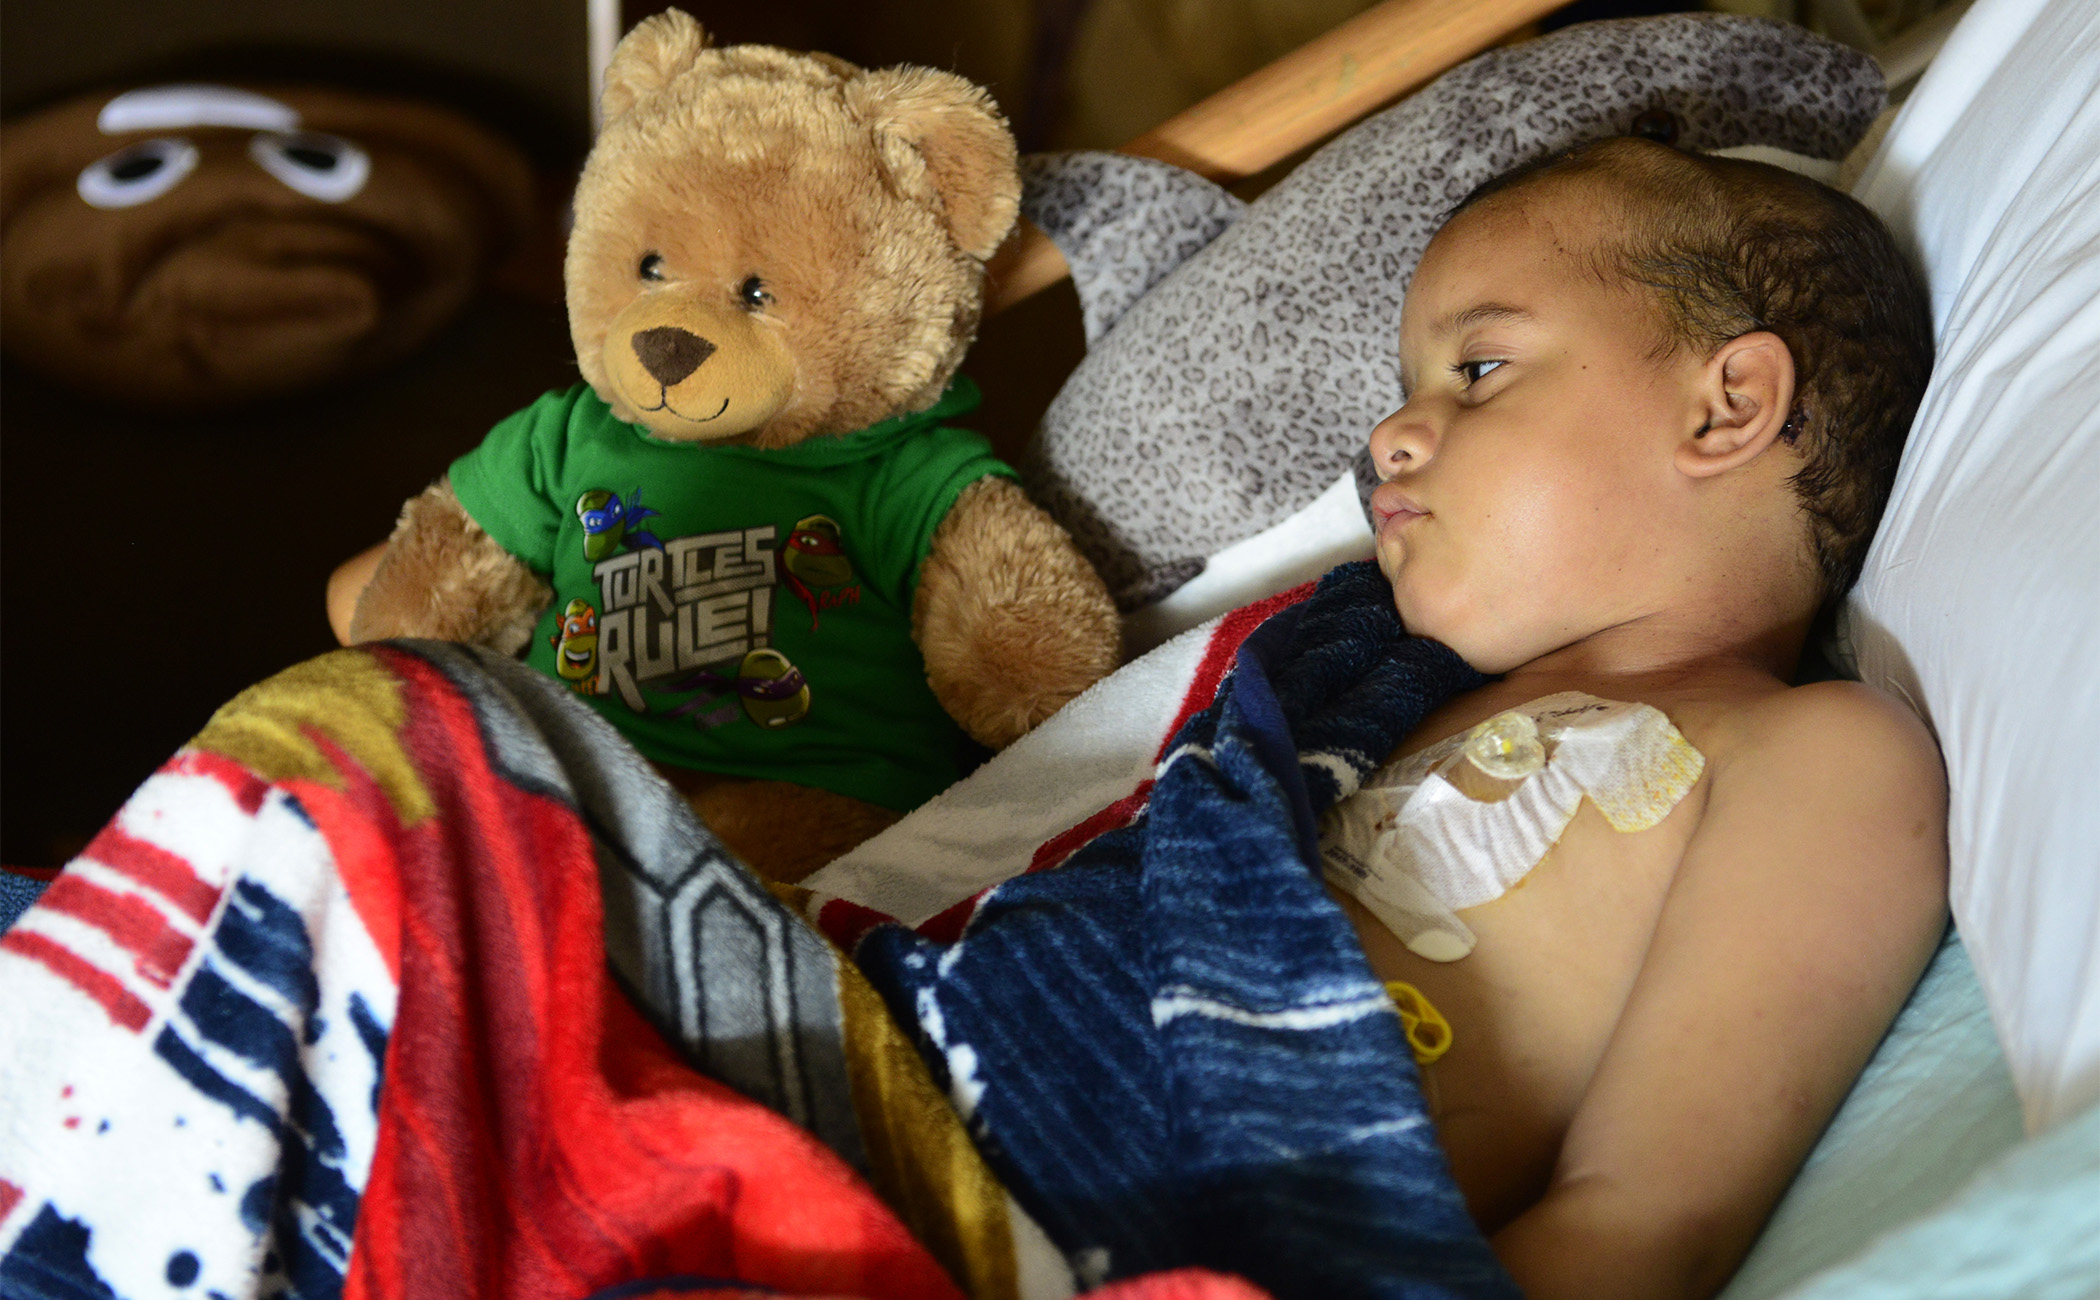 """Diontae """"Tae"""" Smith, 5, rests at a hospice center in Sandusky after spending 16 months in treatments, doctor visits, clinical trials and chemotherapy sessions at different children's hospitals in Cleveland, Philadelphia and Cincinnati. He had been treated for glioblastoma, an aggressive brain cancer with a low survival rate, generally considered incurable."""